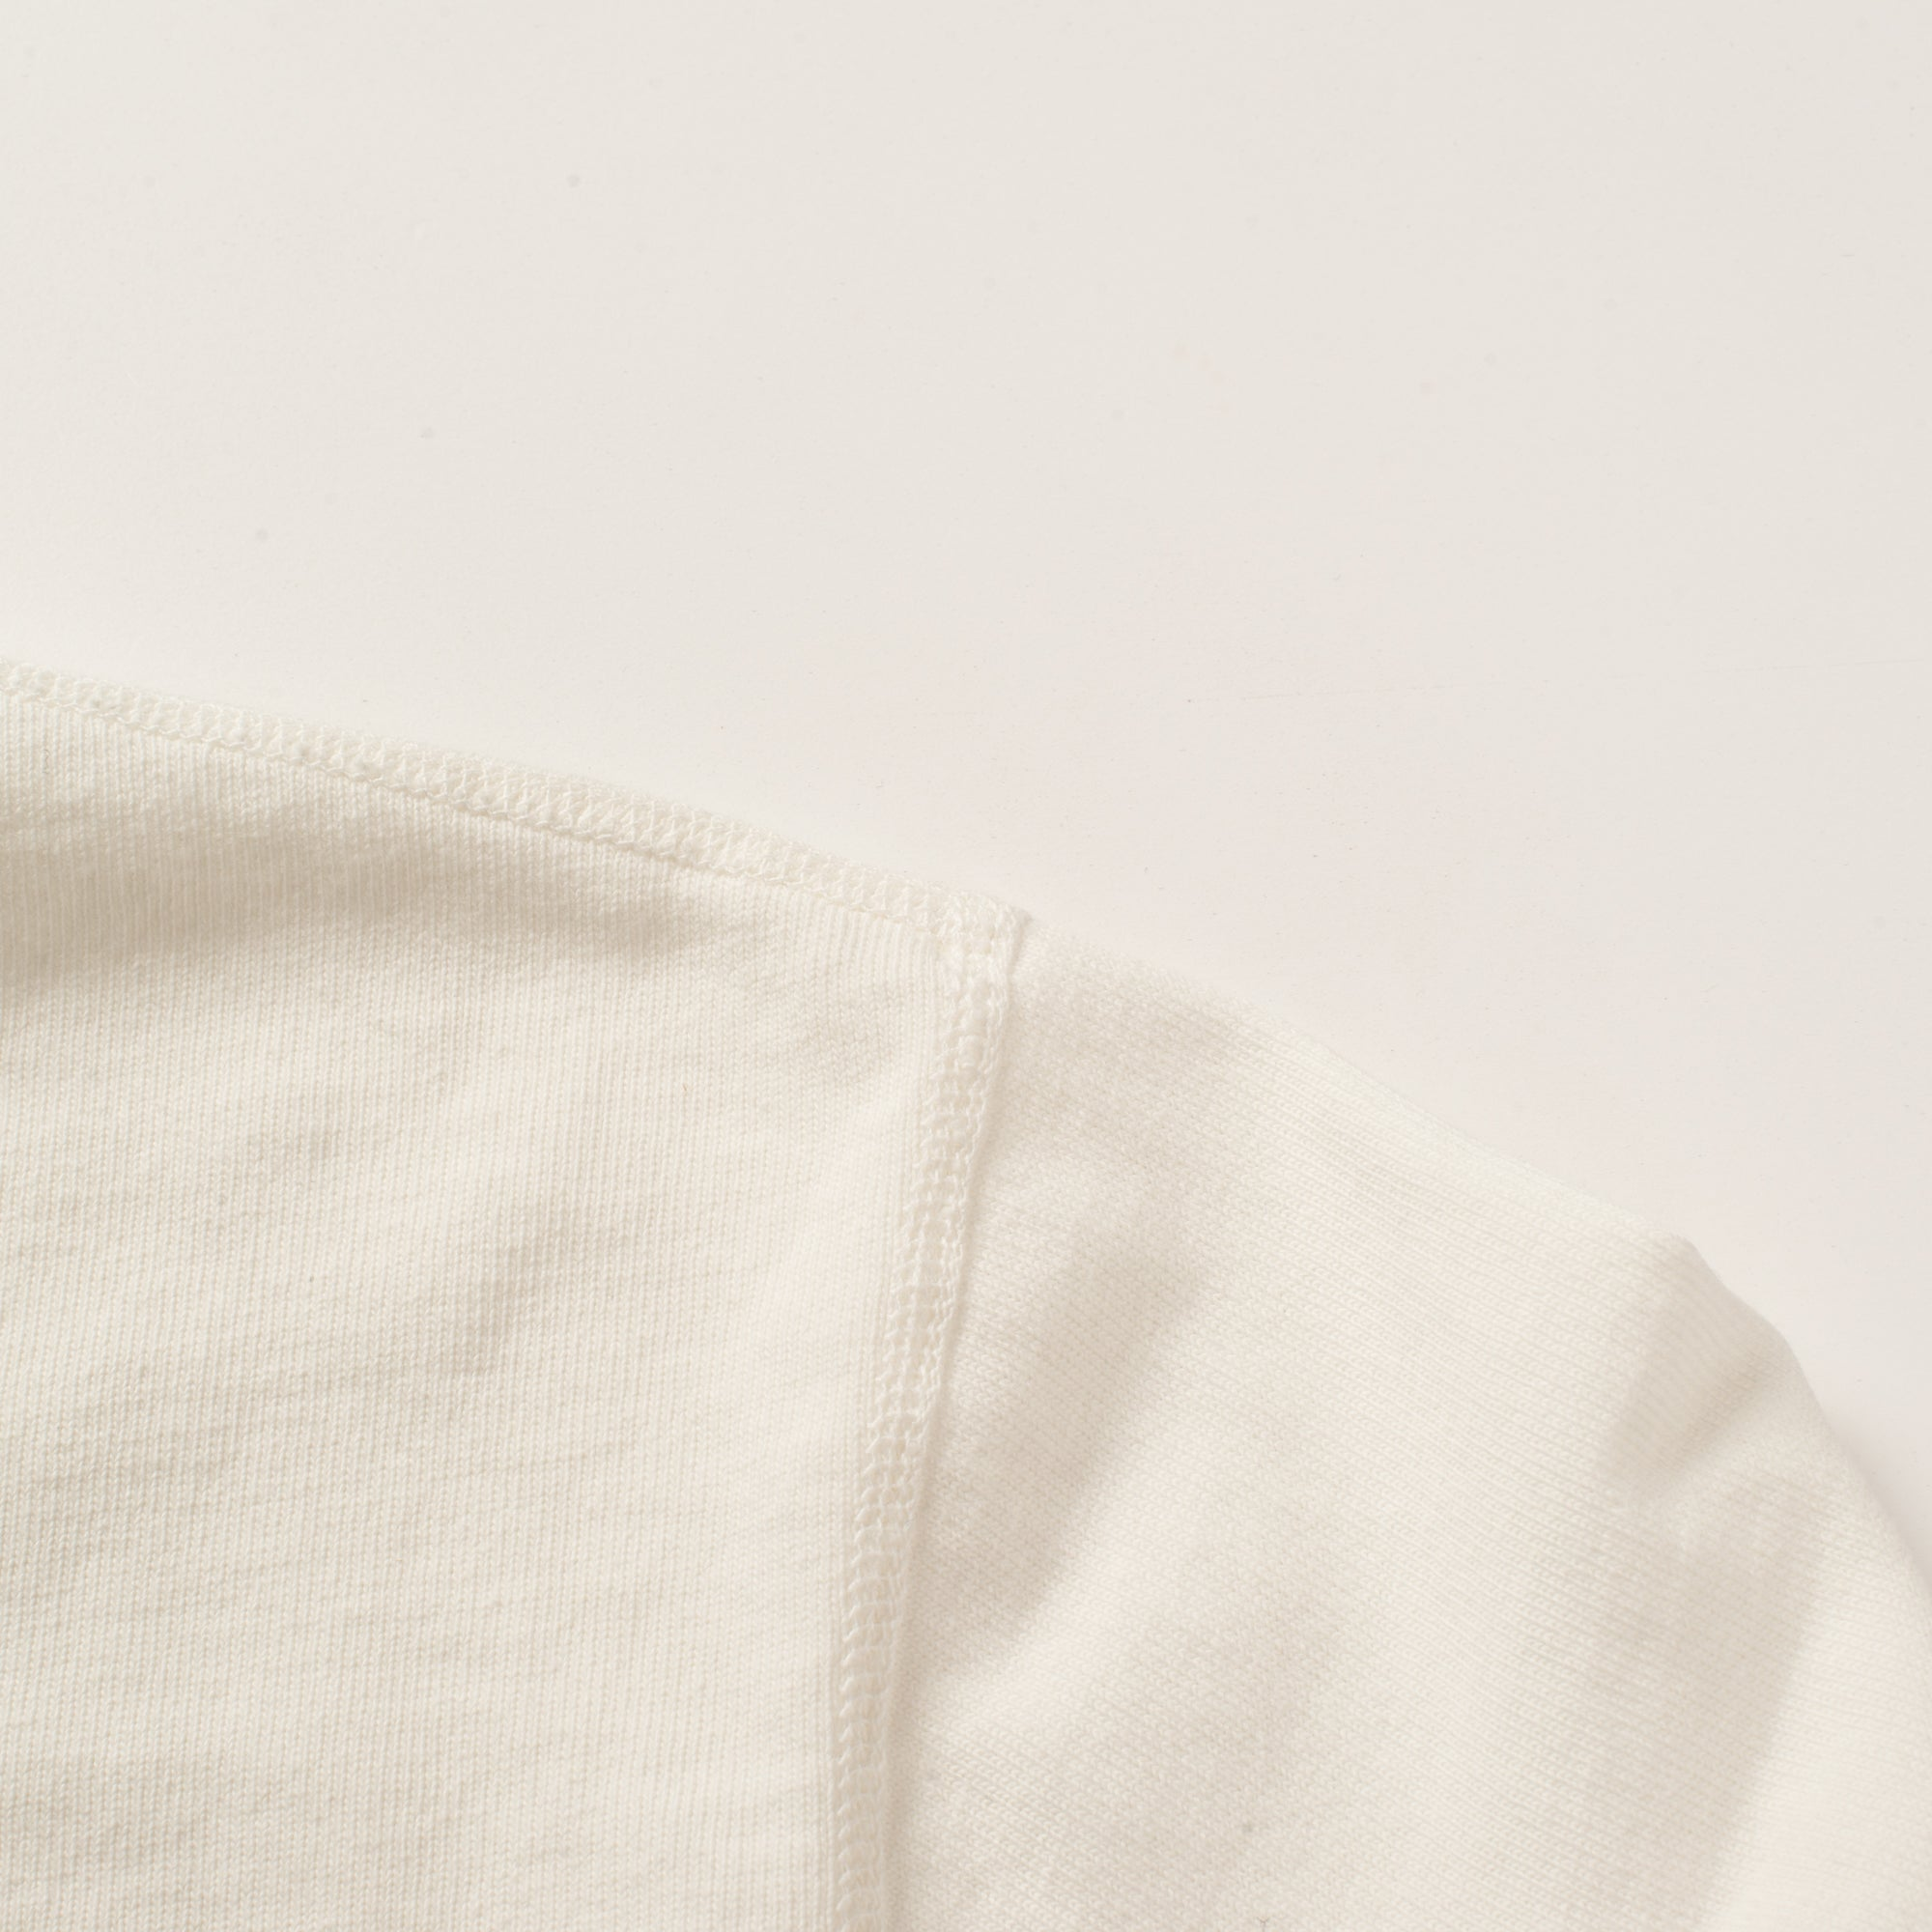 13 OUNCE HENLEY WHITE Shoulder